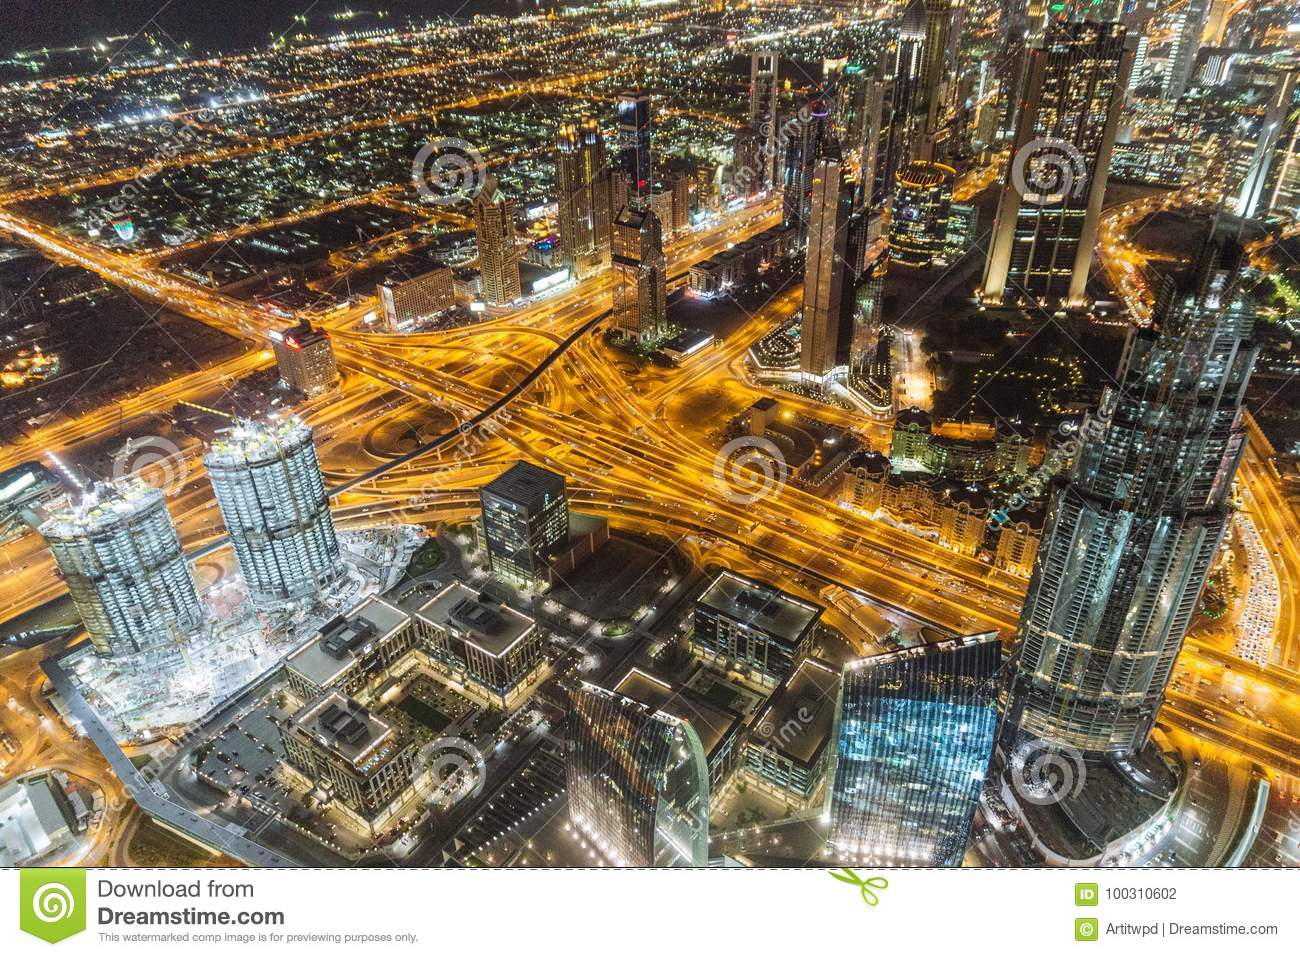 Sheikh Zayed road in the night with yellow light and buildings that view from Burj Khalifa observation floor in Dubai